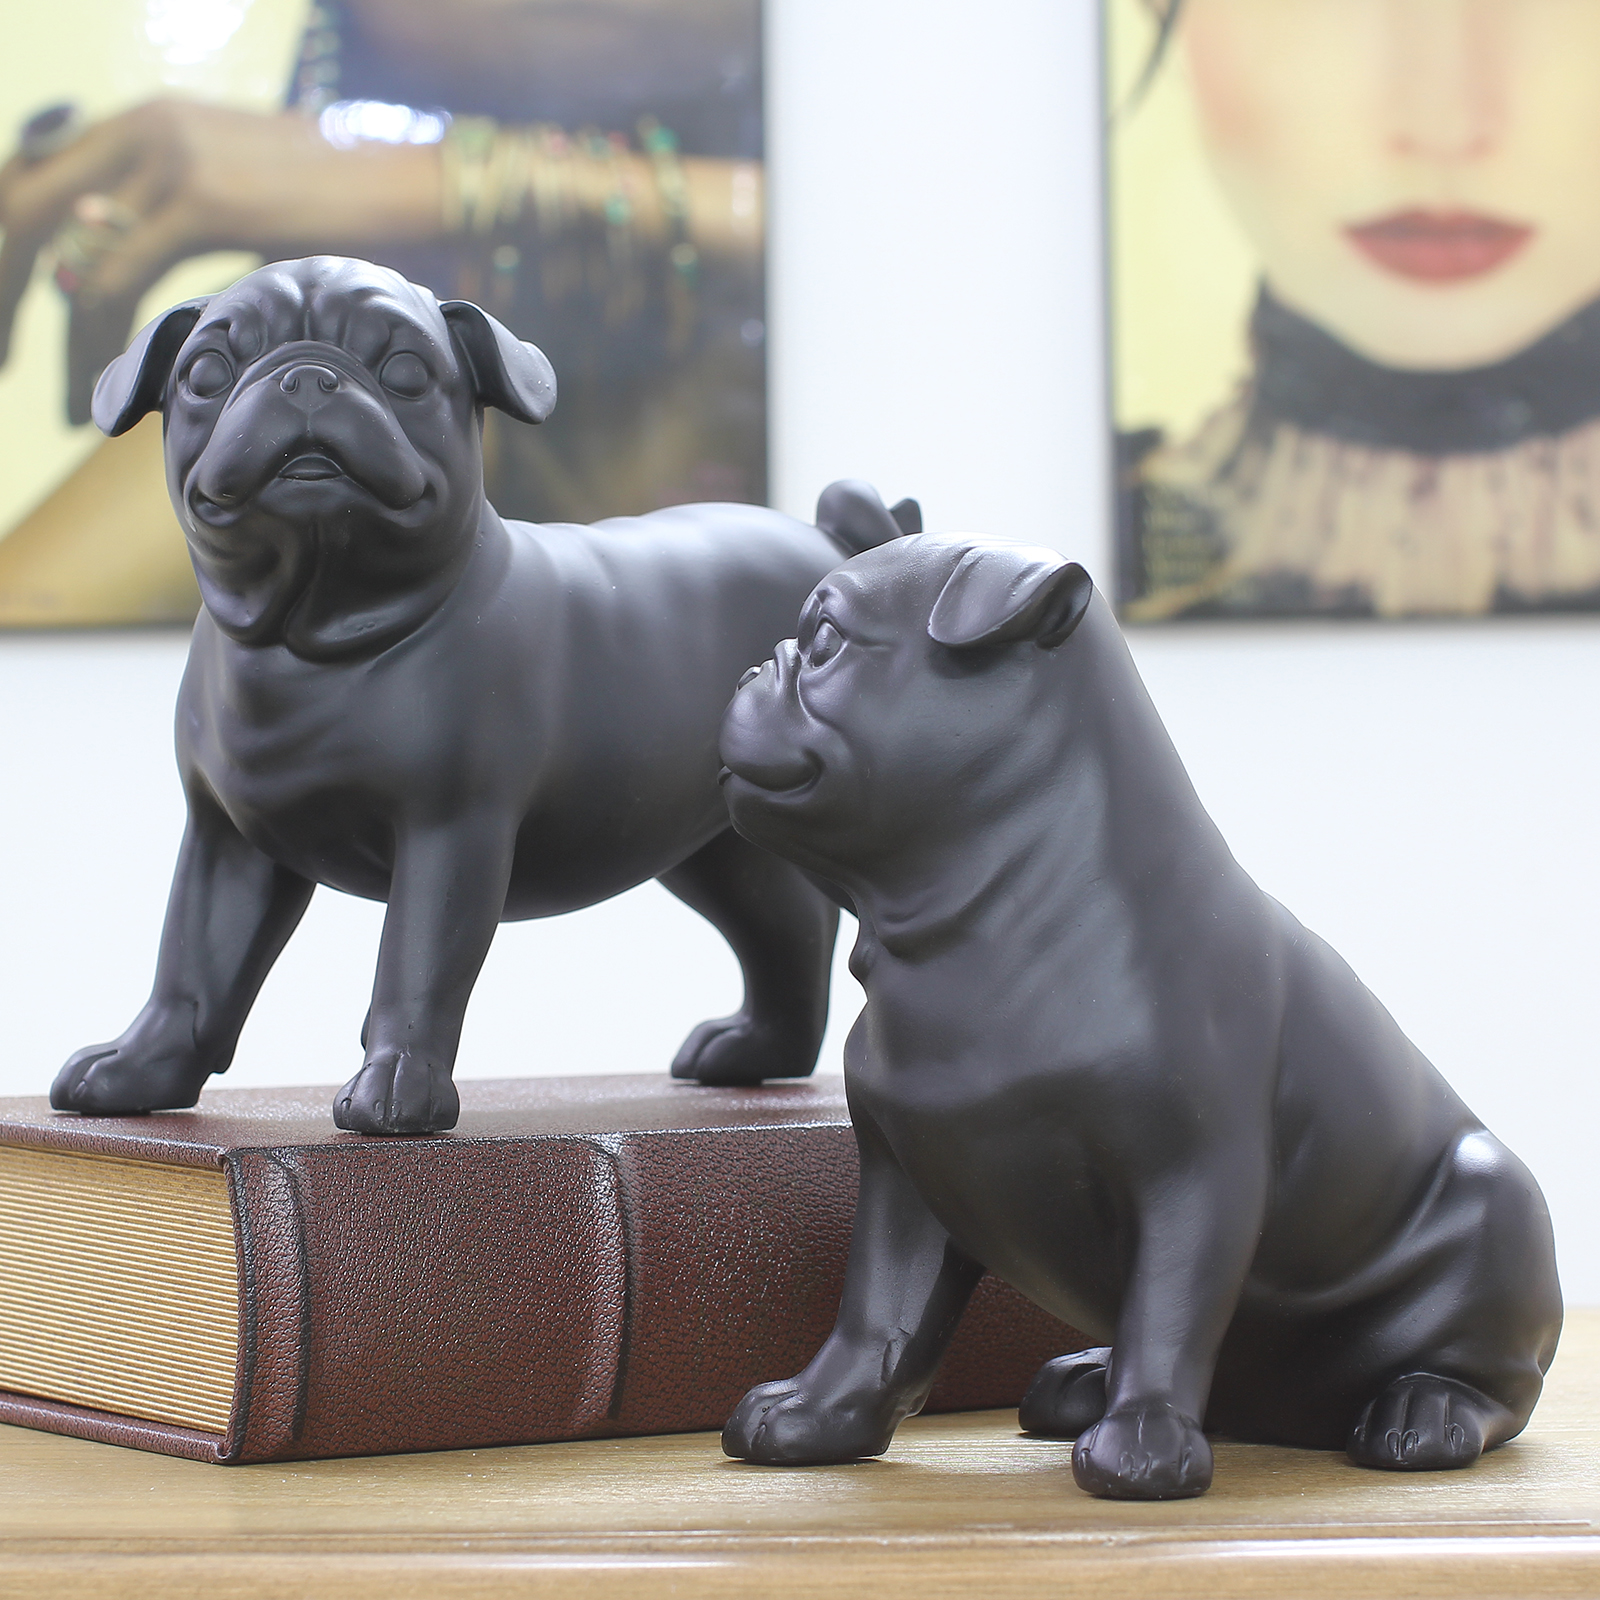 Black Sanddog Ornaments Cute Dog Ornaments Living Room Study Decorations Book Shelves Exquisite Gifts - 2